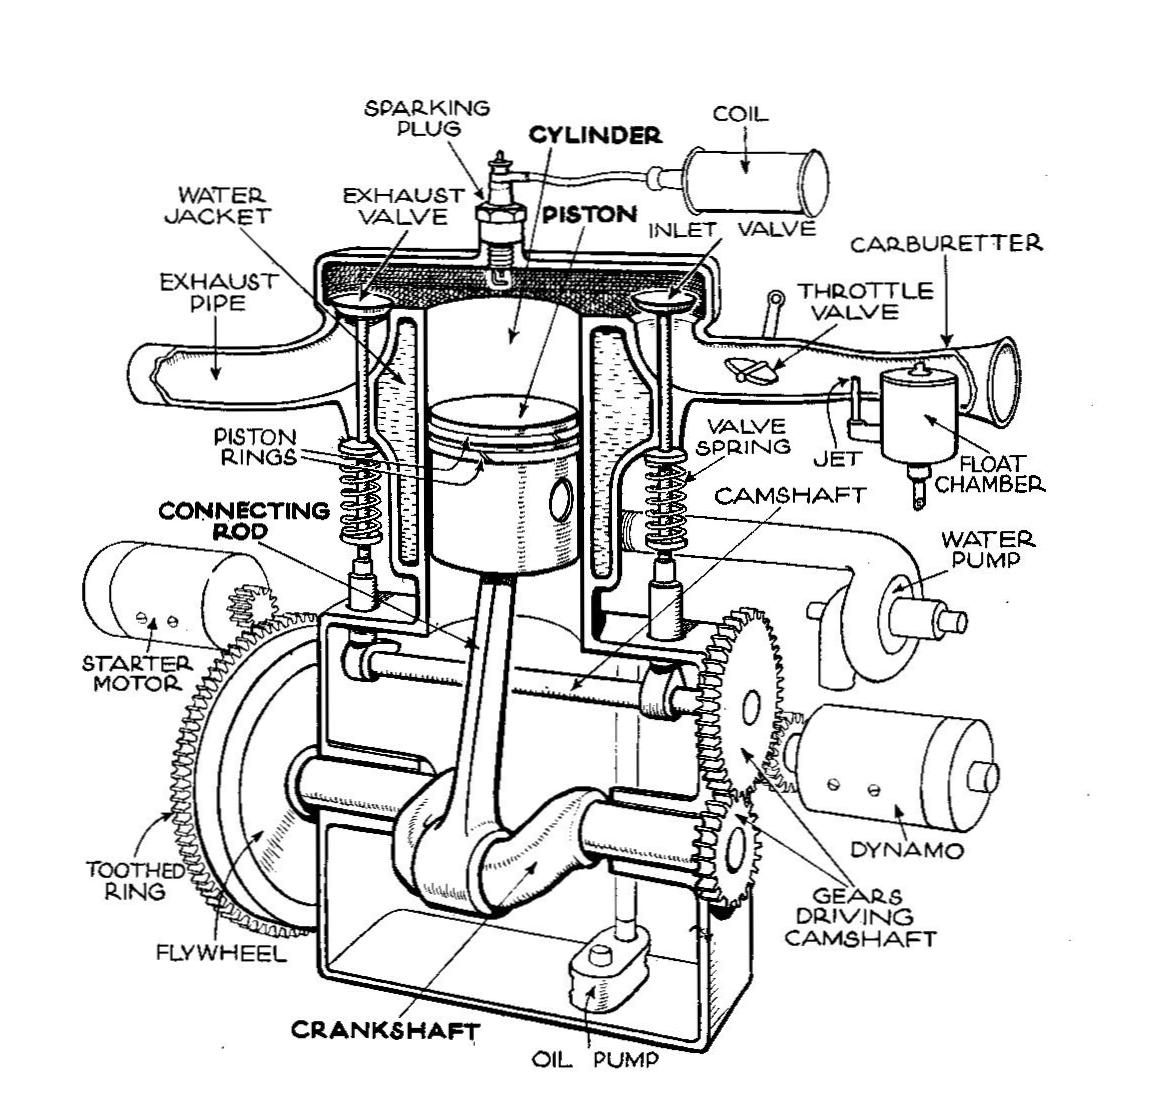 T-head engine - Wikipedia